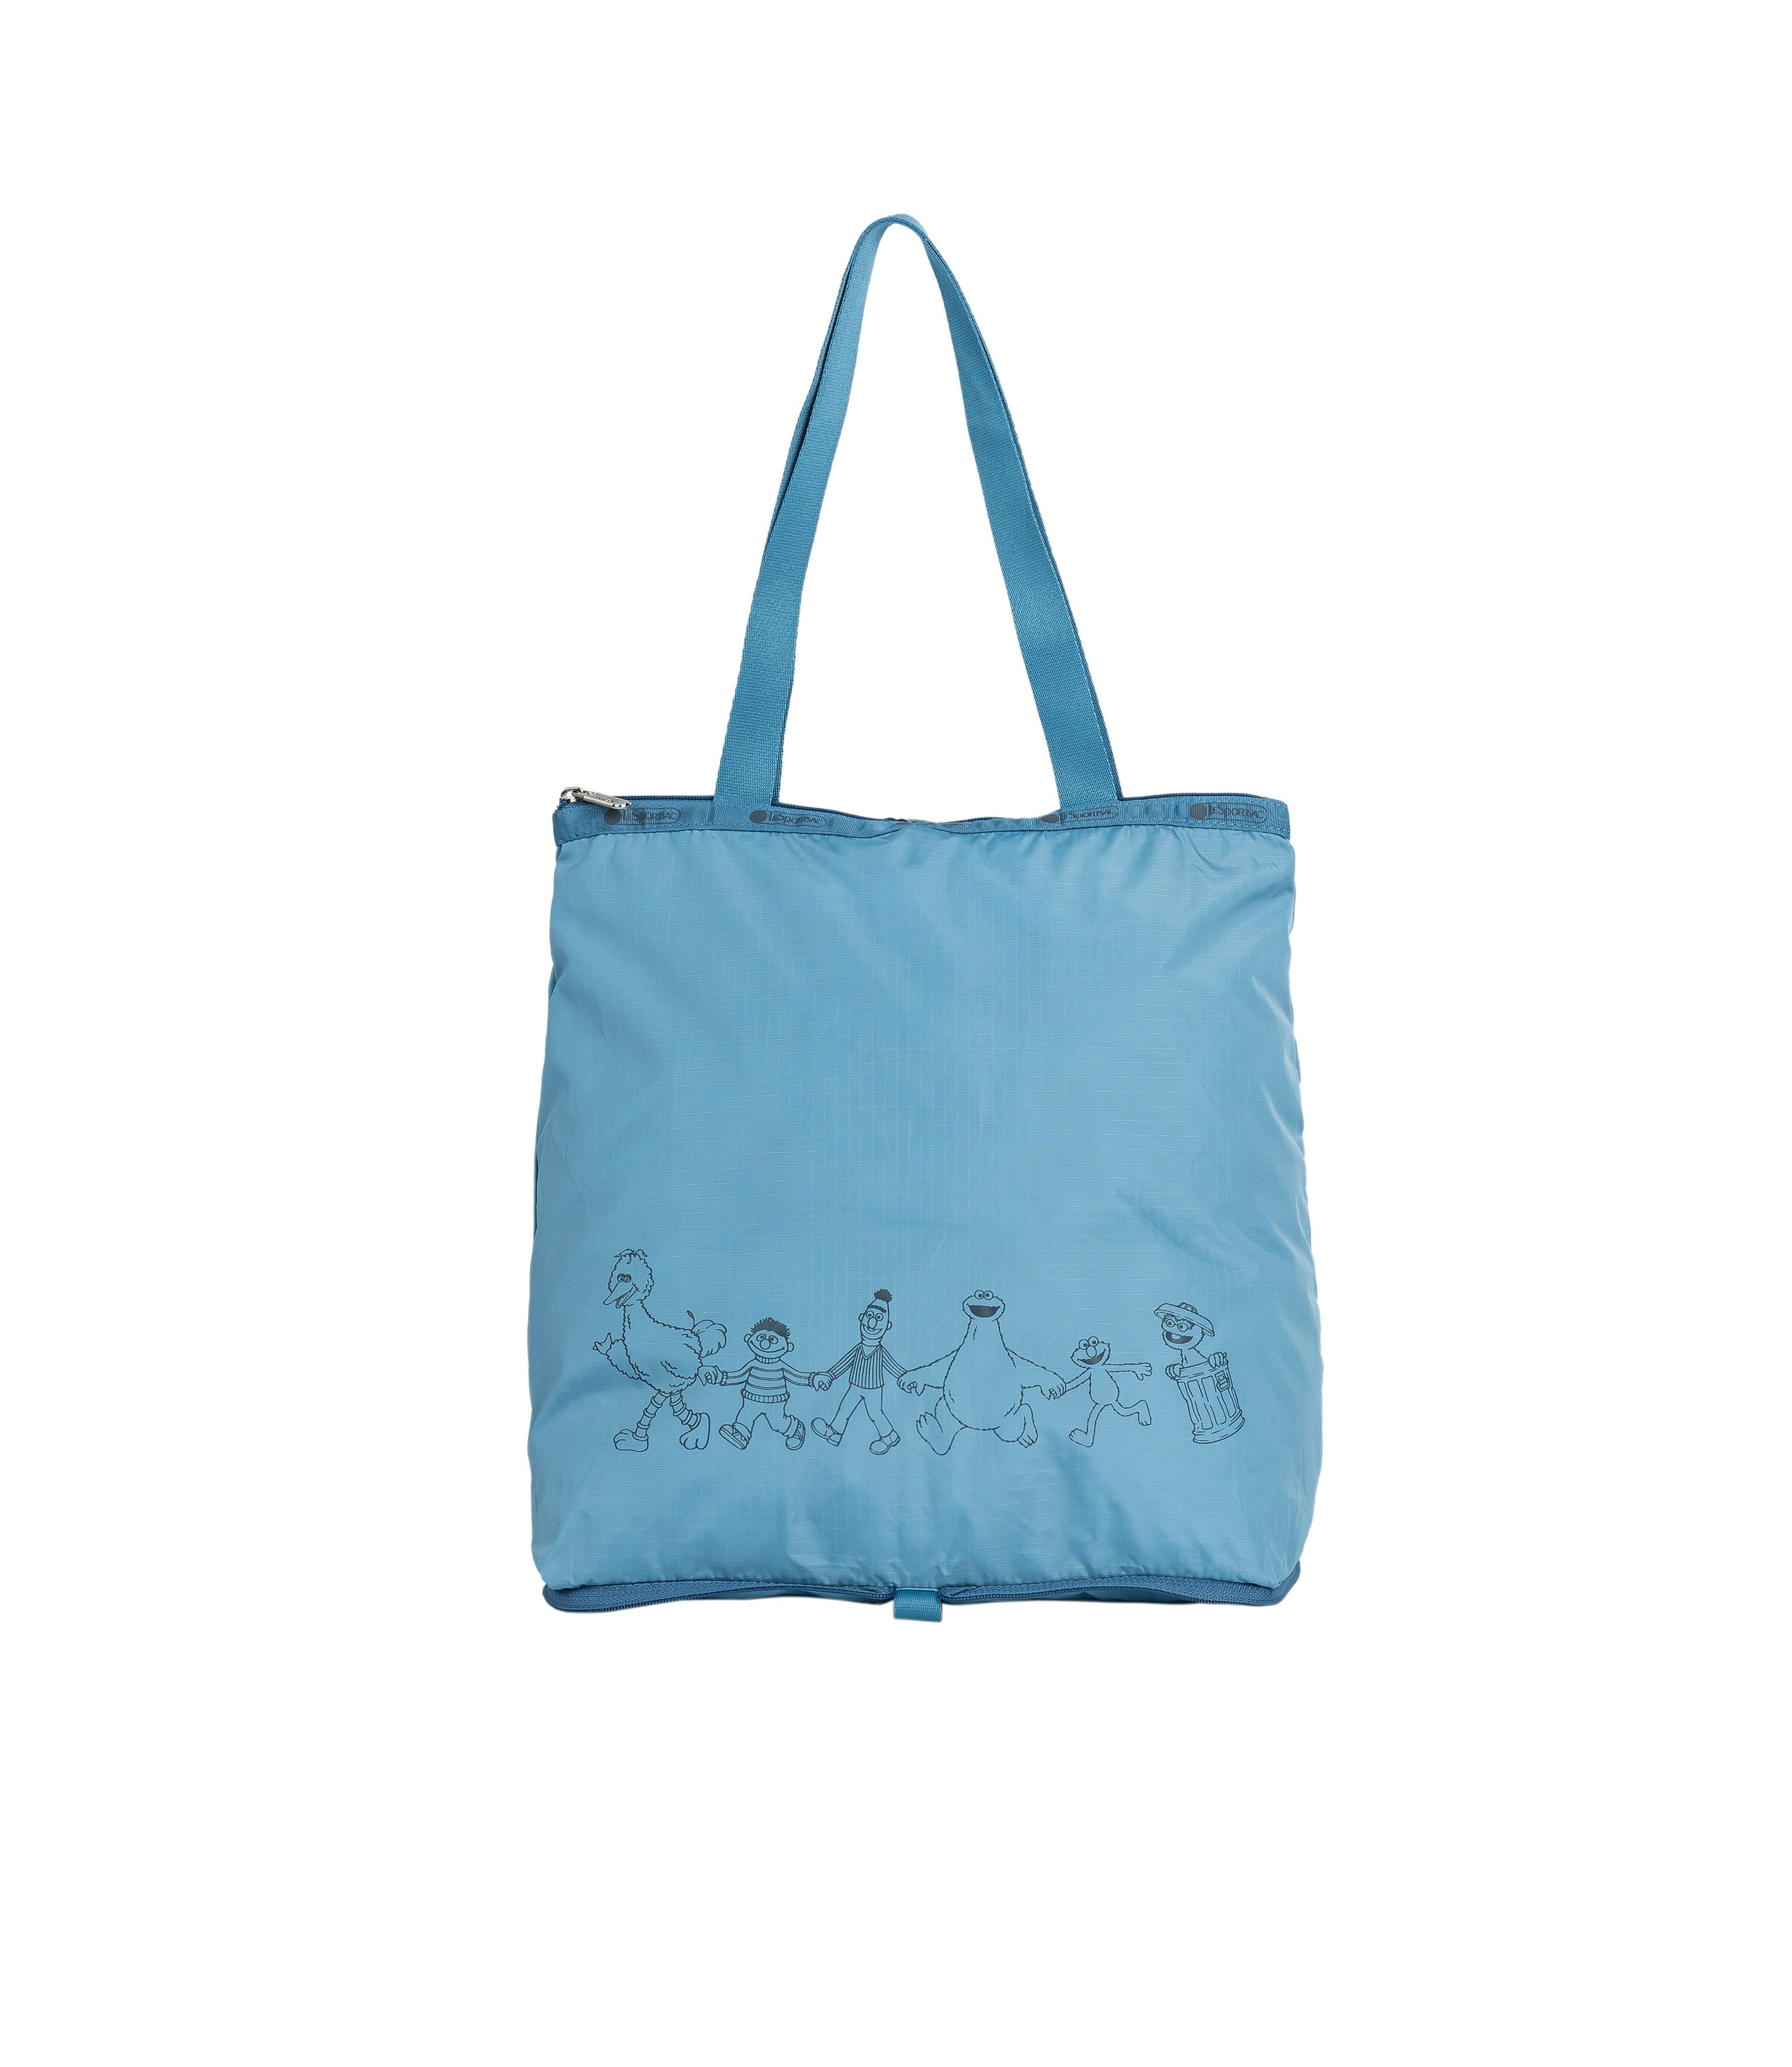 LeSportsac - Totes - Travel Packable Tote - Sesame Friends